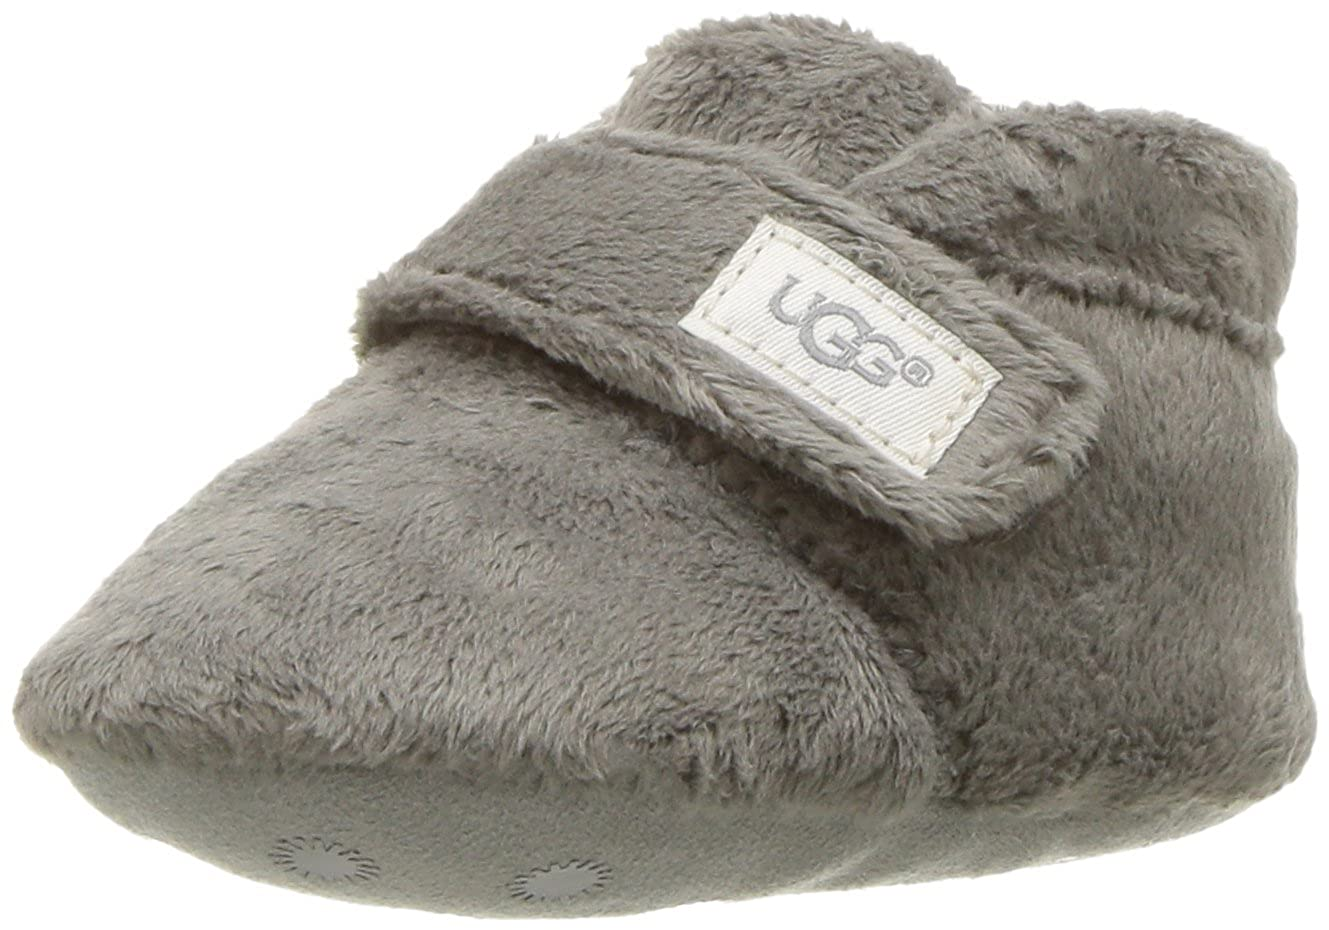 4a9b54b1ec9 UGG - BIXBEE and Lovey - Charcoal - Infant Booties (Includes ...